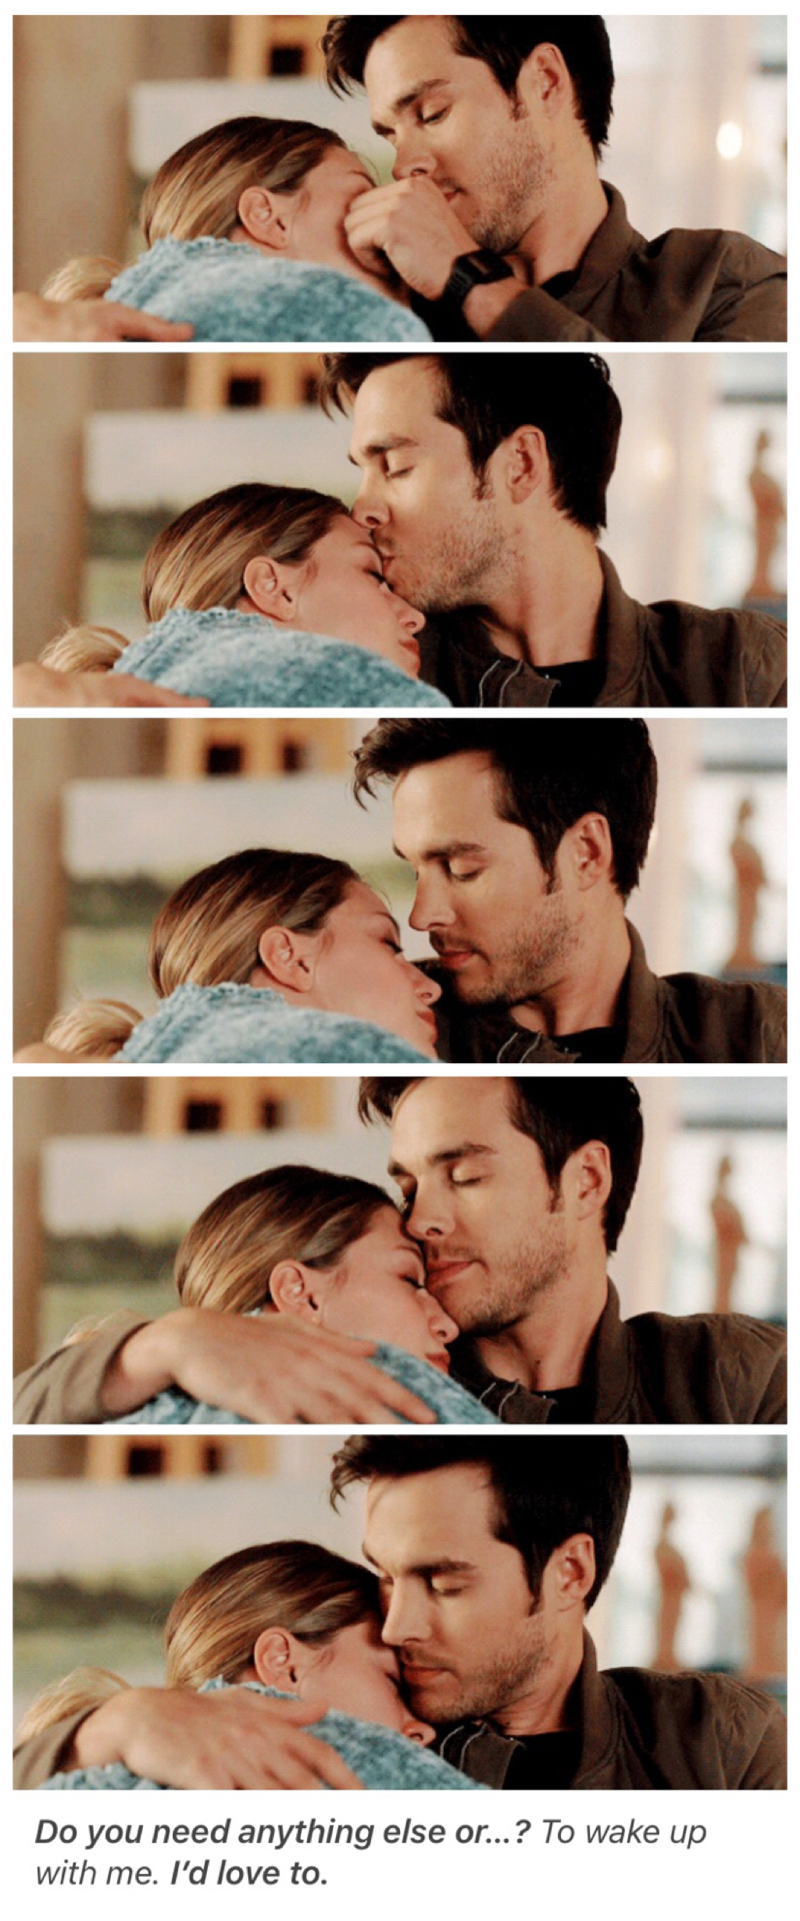 """"""" I'm not gonna talk. Why don't you tell me what you need. I'll listen."""" Mon-El  """" Just be here with me"""" Kara   Cuteness overload 😍💕"""